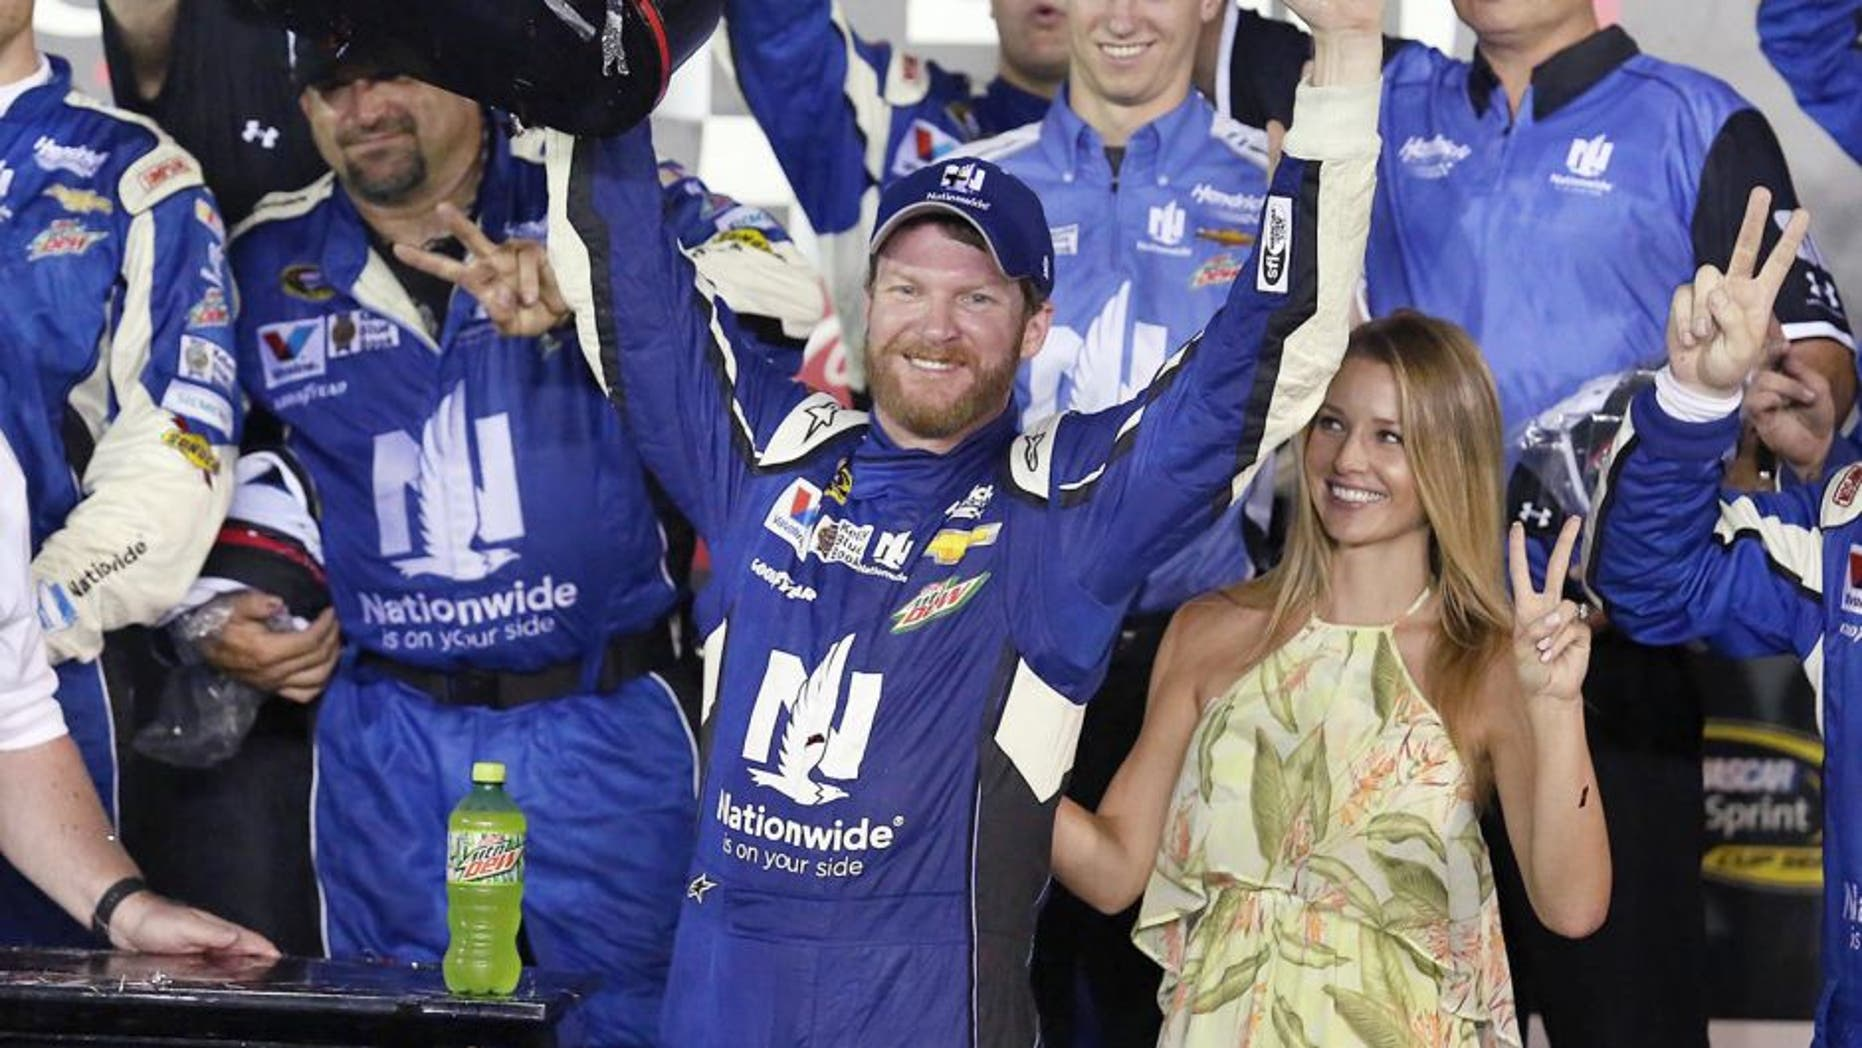 Dale Earnhardt Jr. celebrates in Victory Lane after winning the Coke Zero 400 NASCAR Sprint Cup race at Daytona International Speedway on Sunday, July 5, 2015 in Daytona Beach, Fla. (Stephen M. Dowell/Orlando Sentinel/TNS via Getty Images)